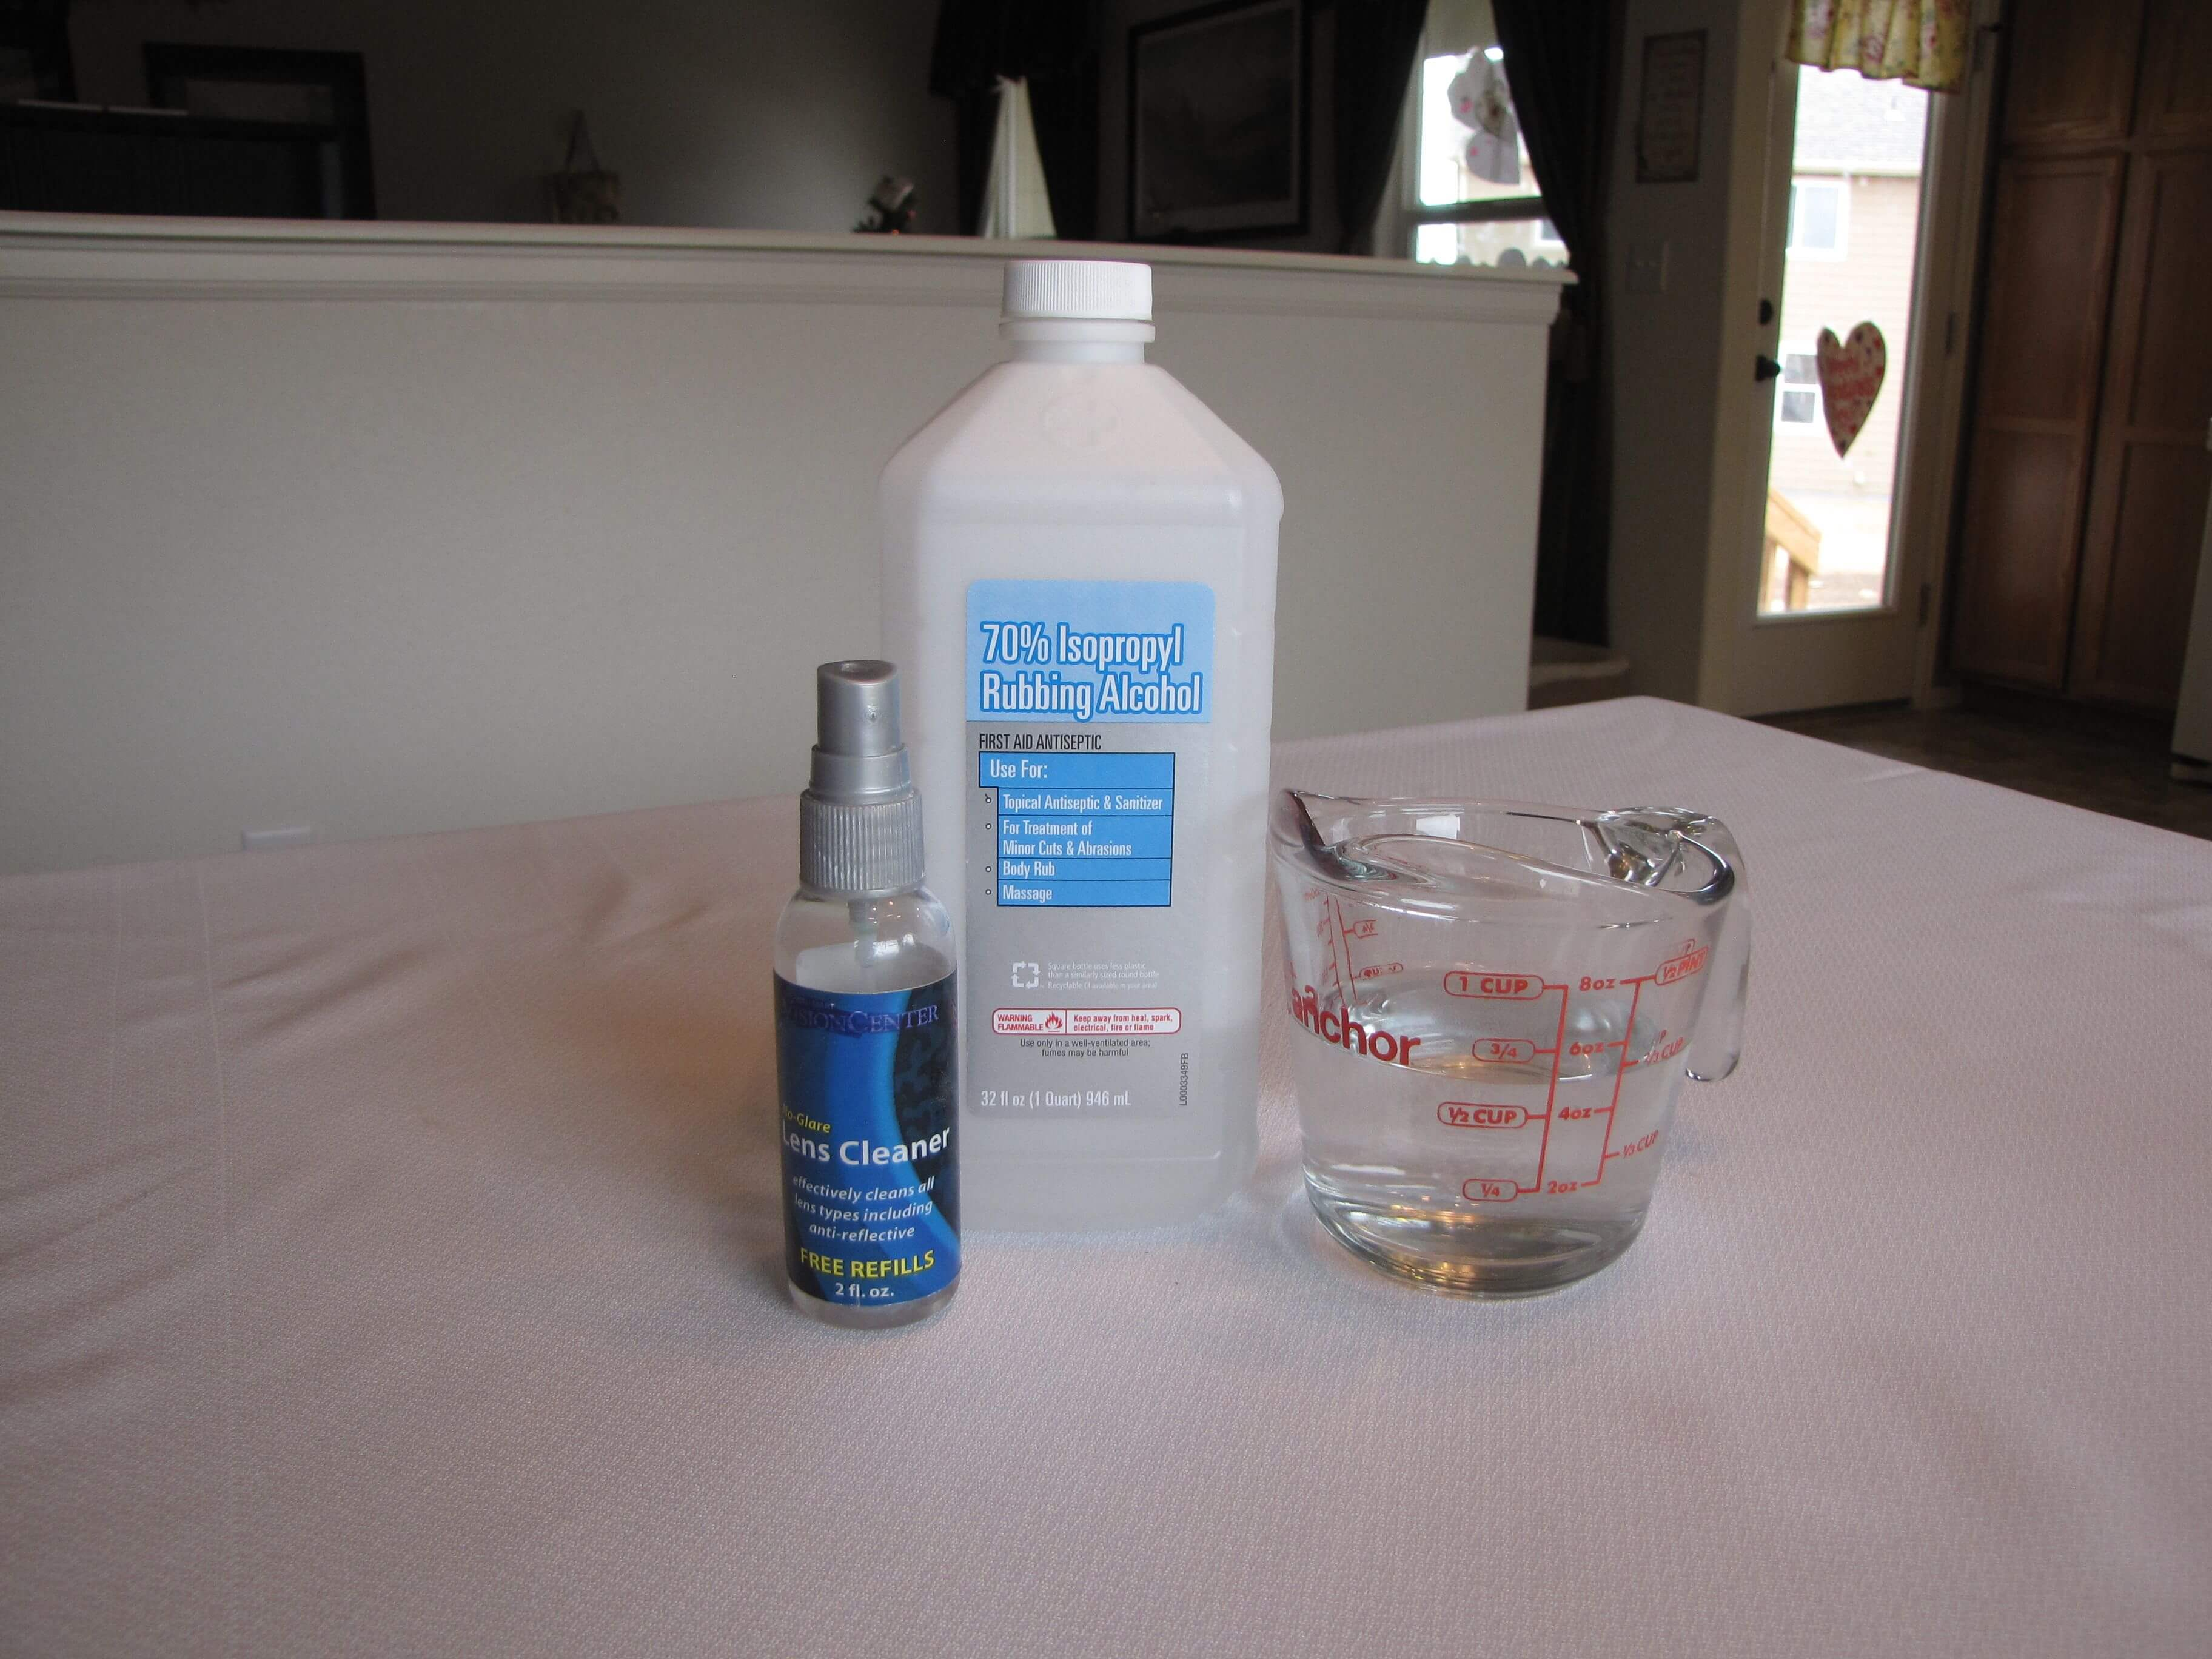 www.LivingOnADime.com, Homemade Eye Glass Cleaner